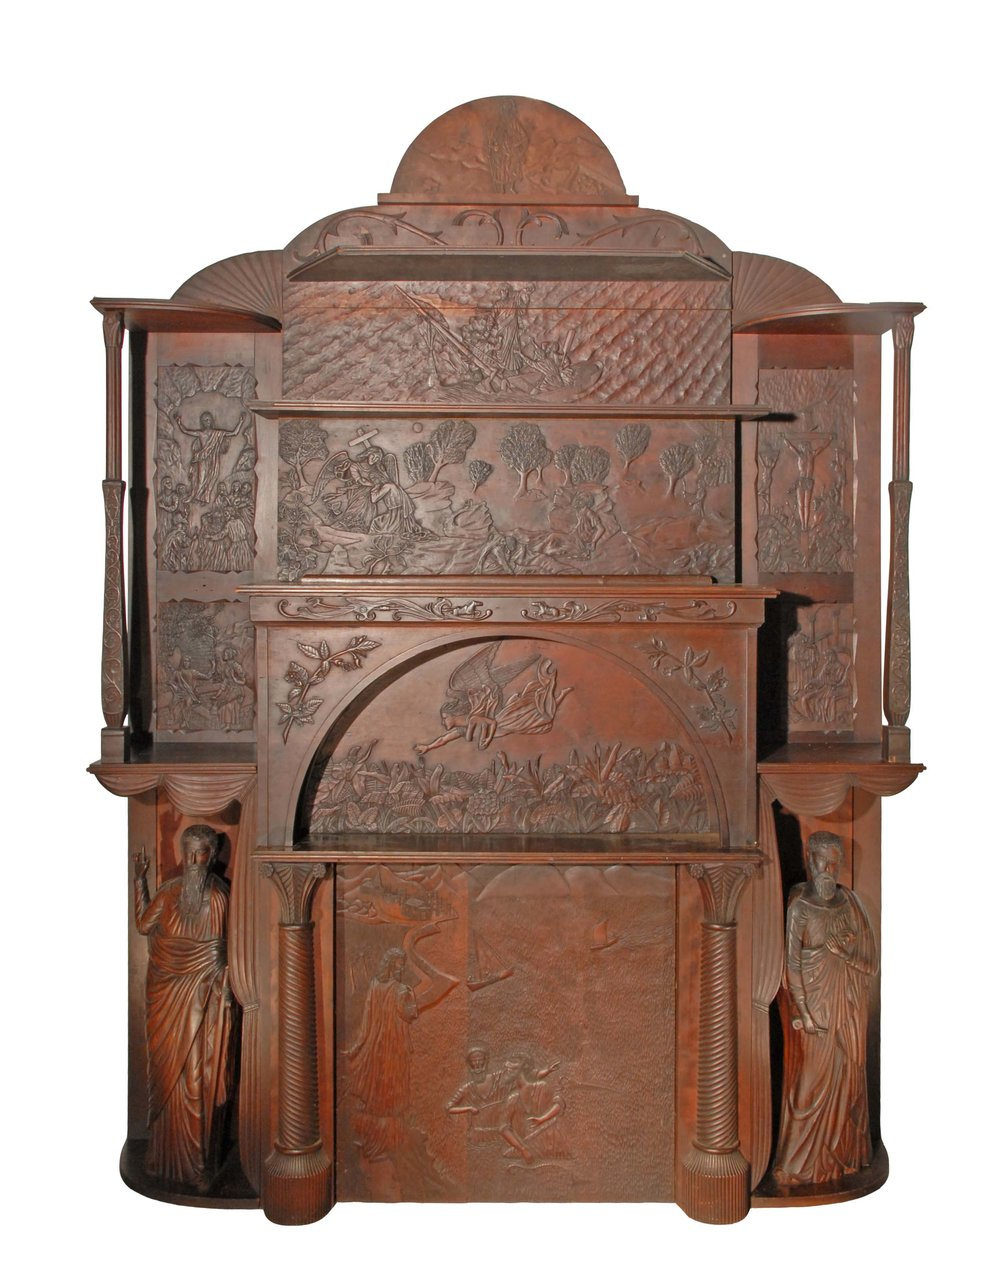 J. Paul Bateman, Bridgeton, NJ,  Mantle Surround,  c. 1890, carved cherry wood, 80h x 70w x 30d in.